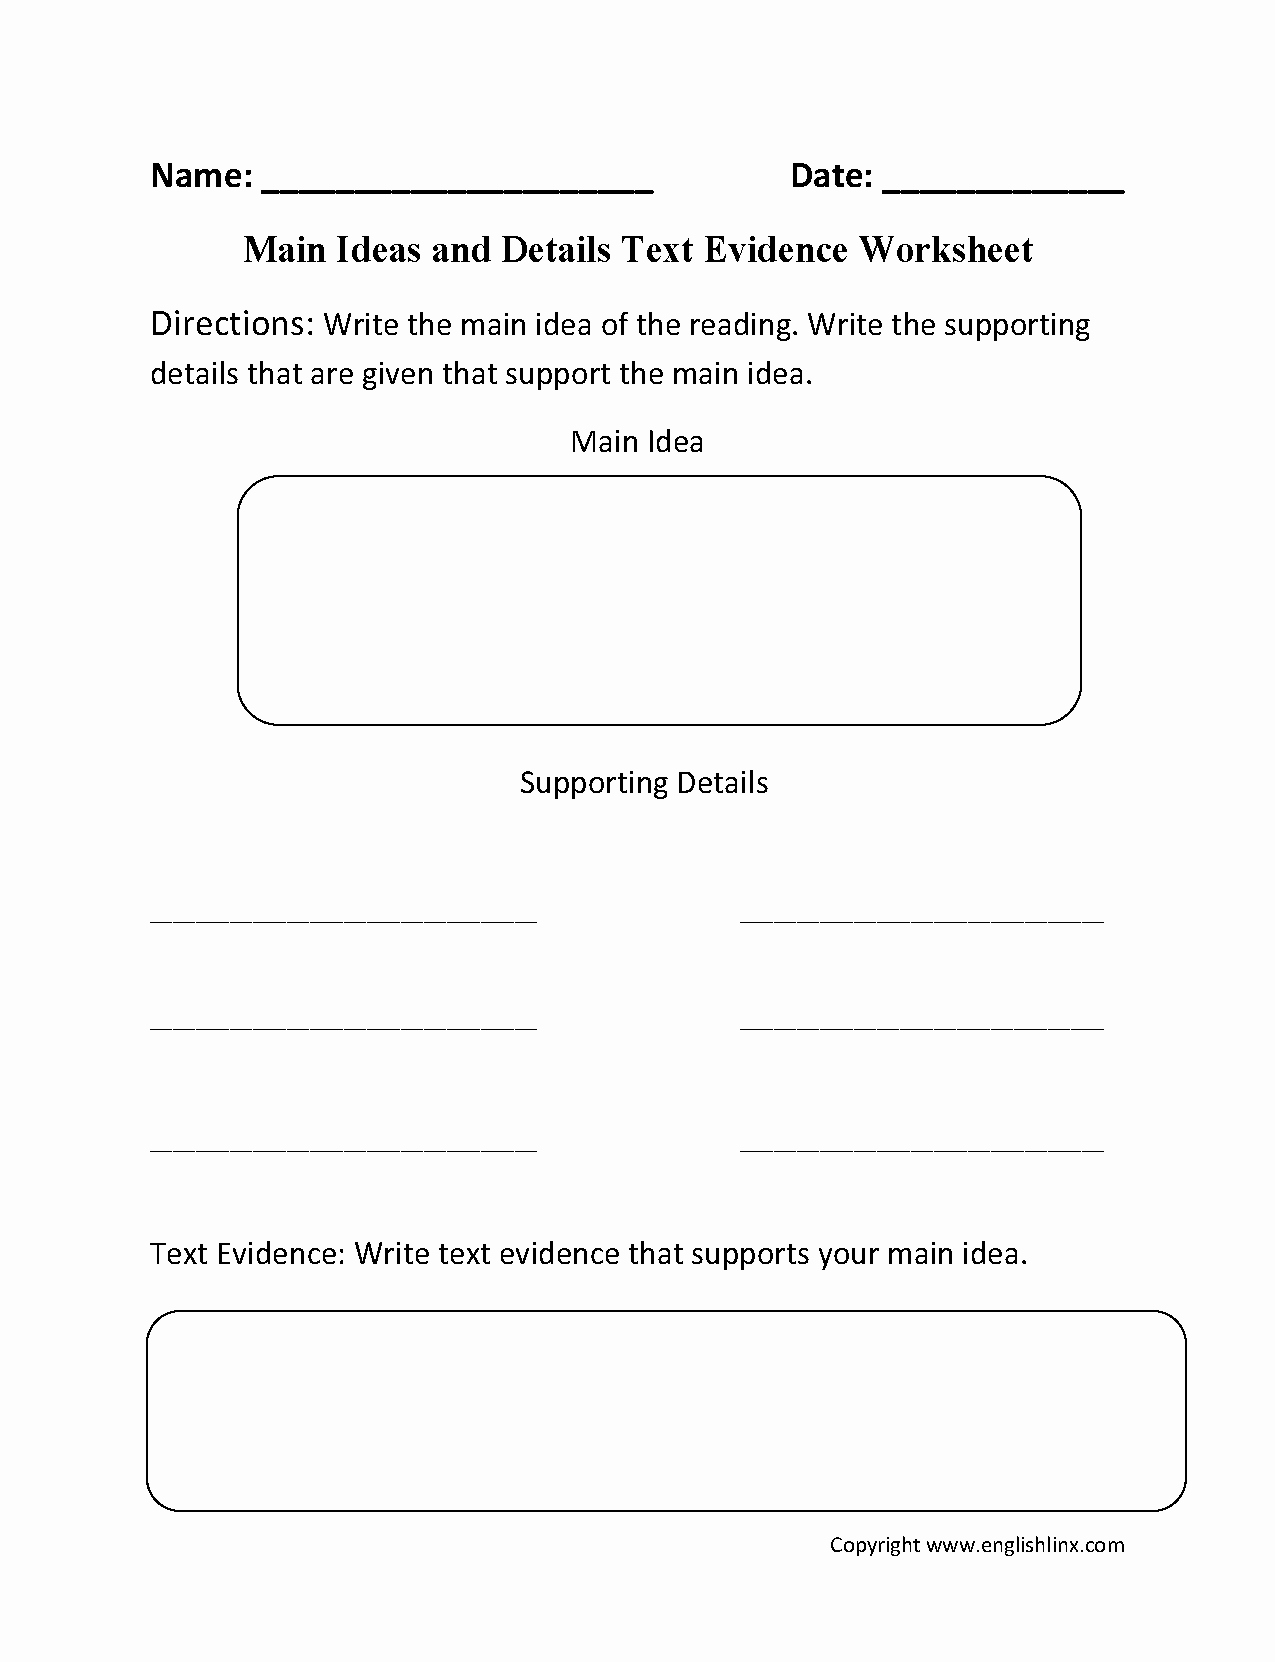 Main Idea Worksheet 4th Grade Luxury Main Idea Worksheets 4th Grade